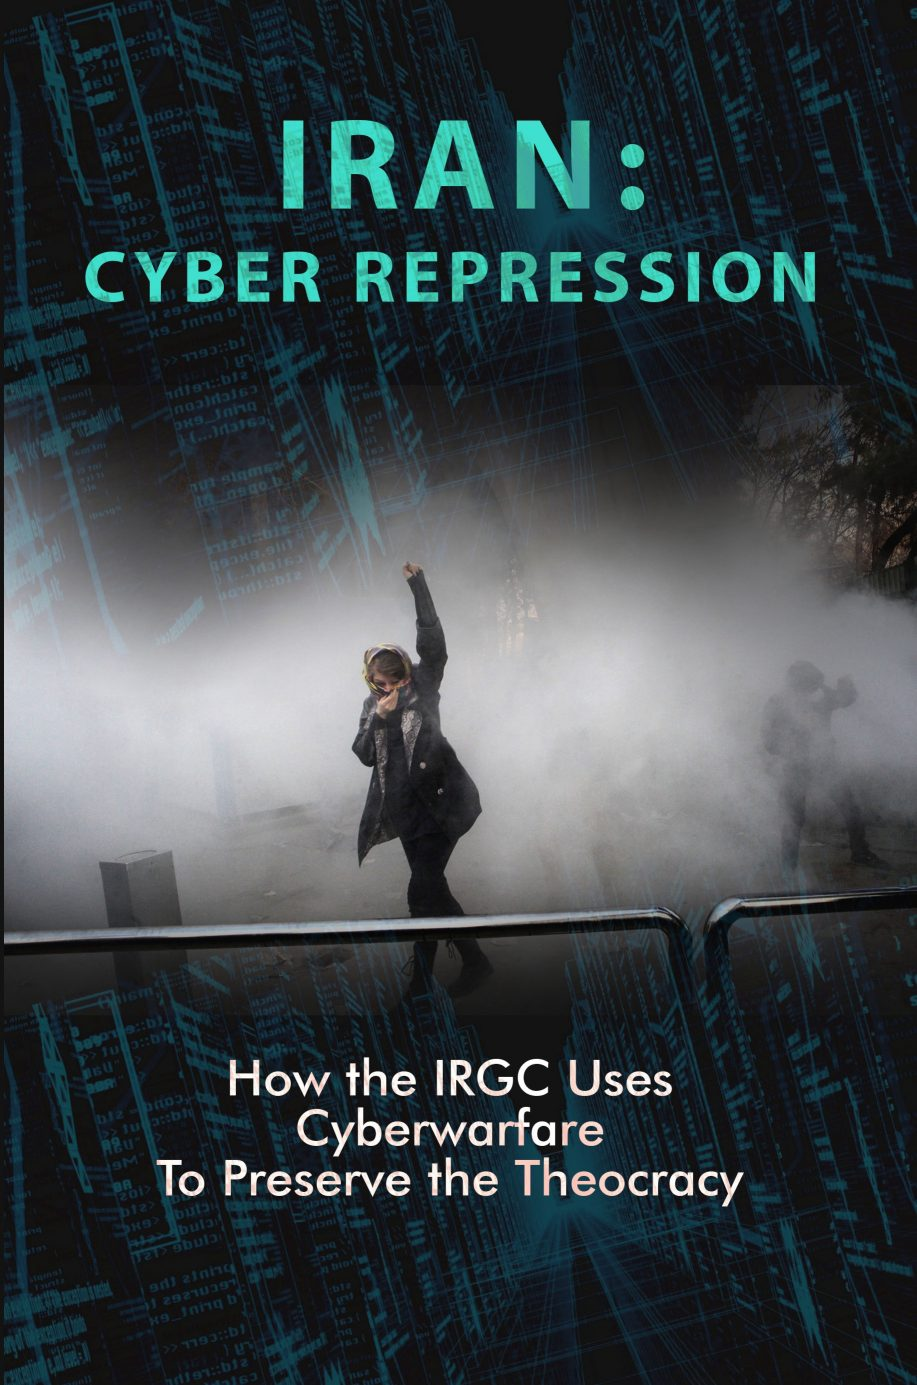 How the IRGC Uses Cyberwarfare to Preserve the Theocracy